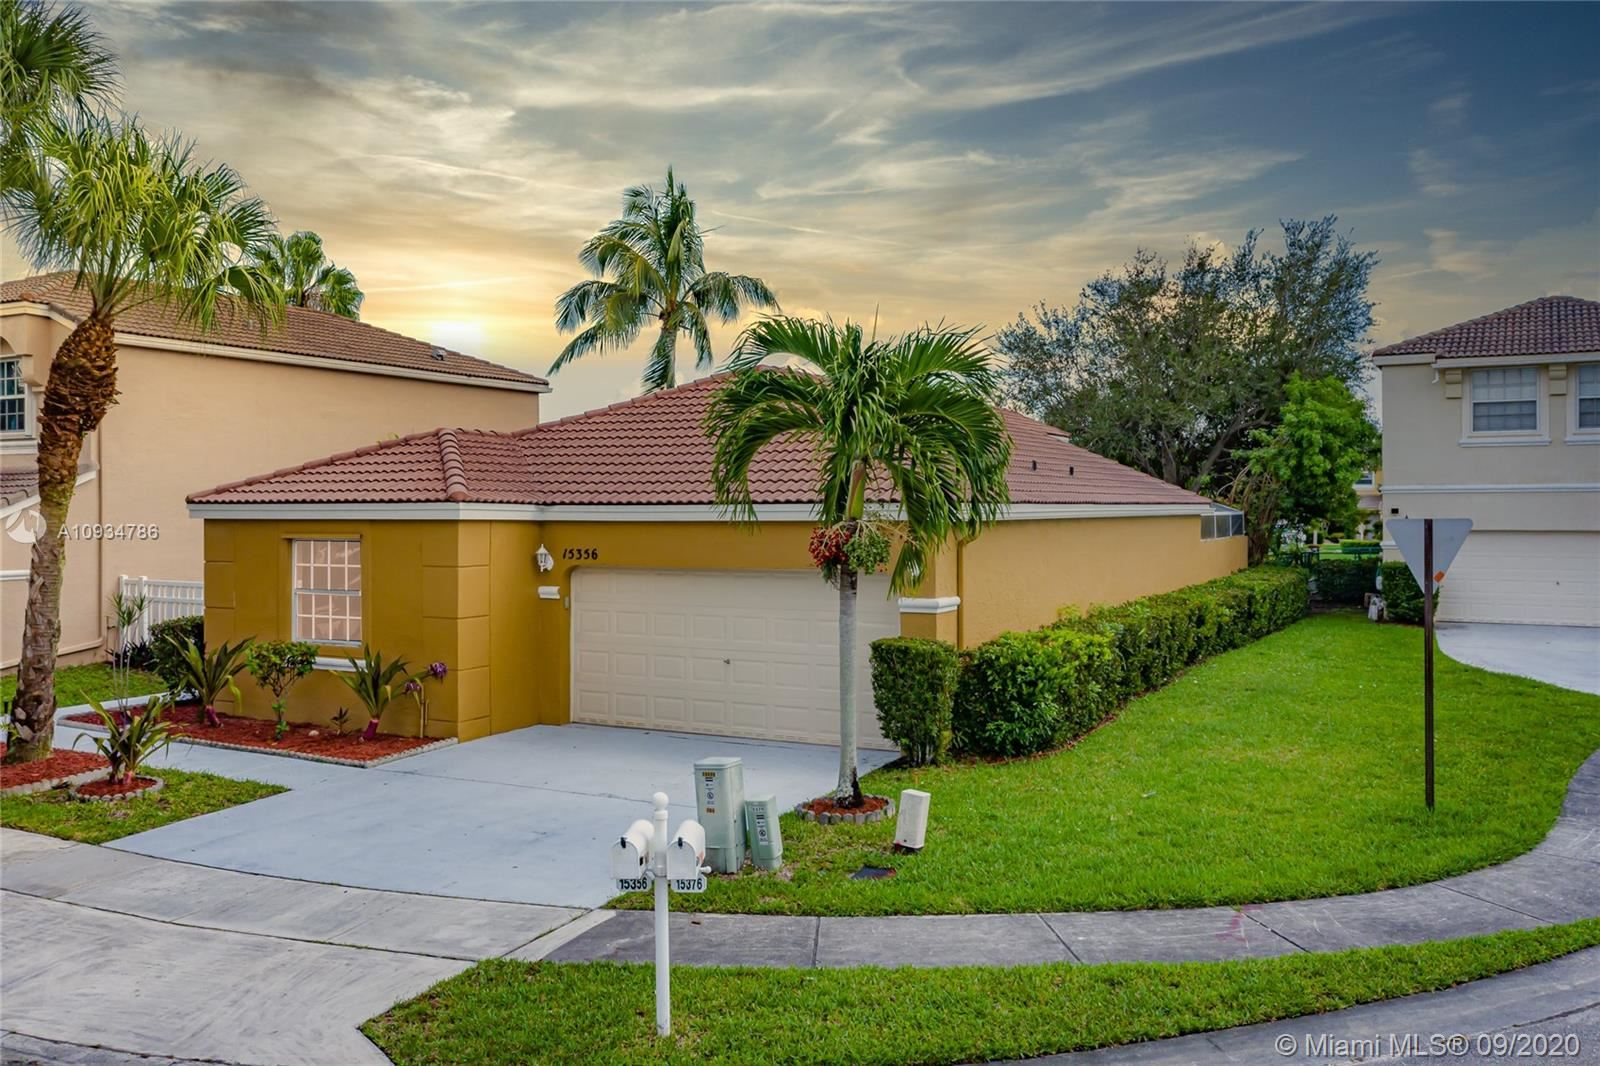 15356 NW 14th Mnr, Pembroke Pines, FL 33028 - #: A10934786